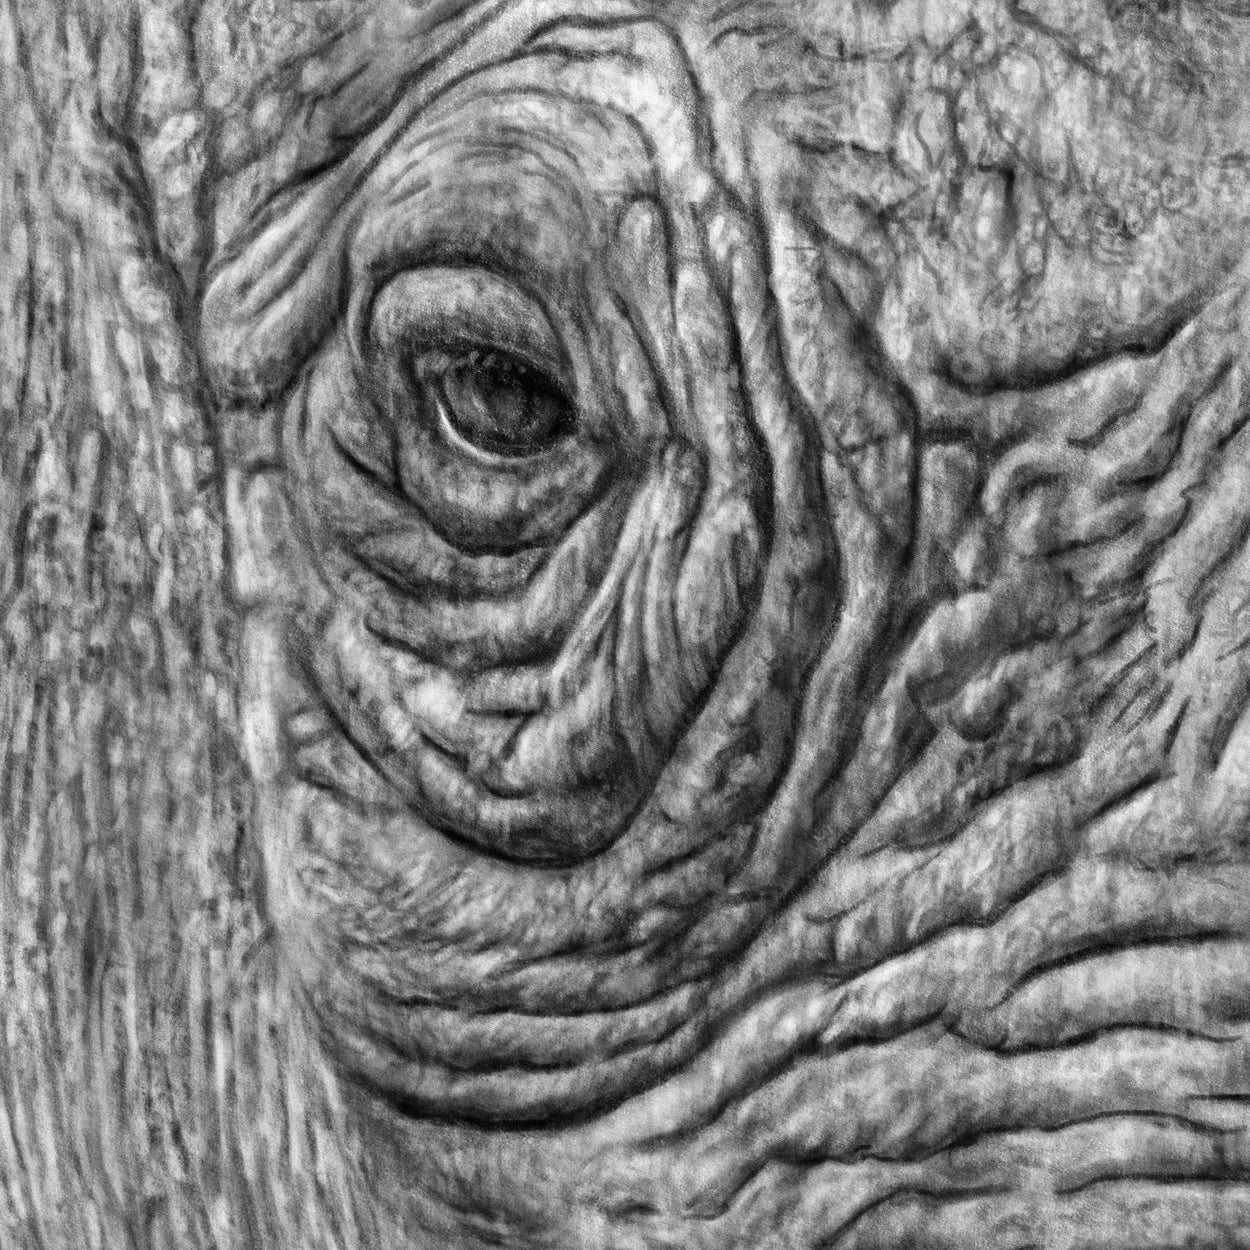 Rhinoceros Drawing Close-up - The Thriving Wild